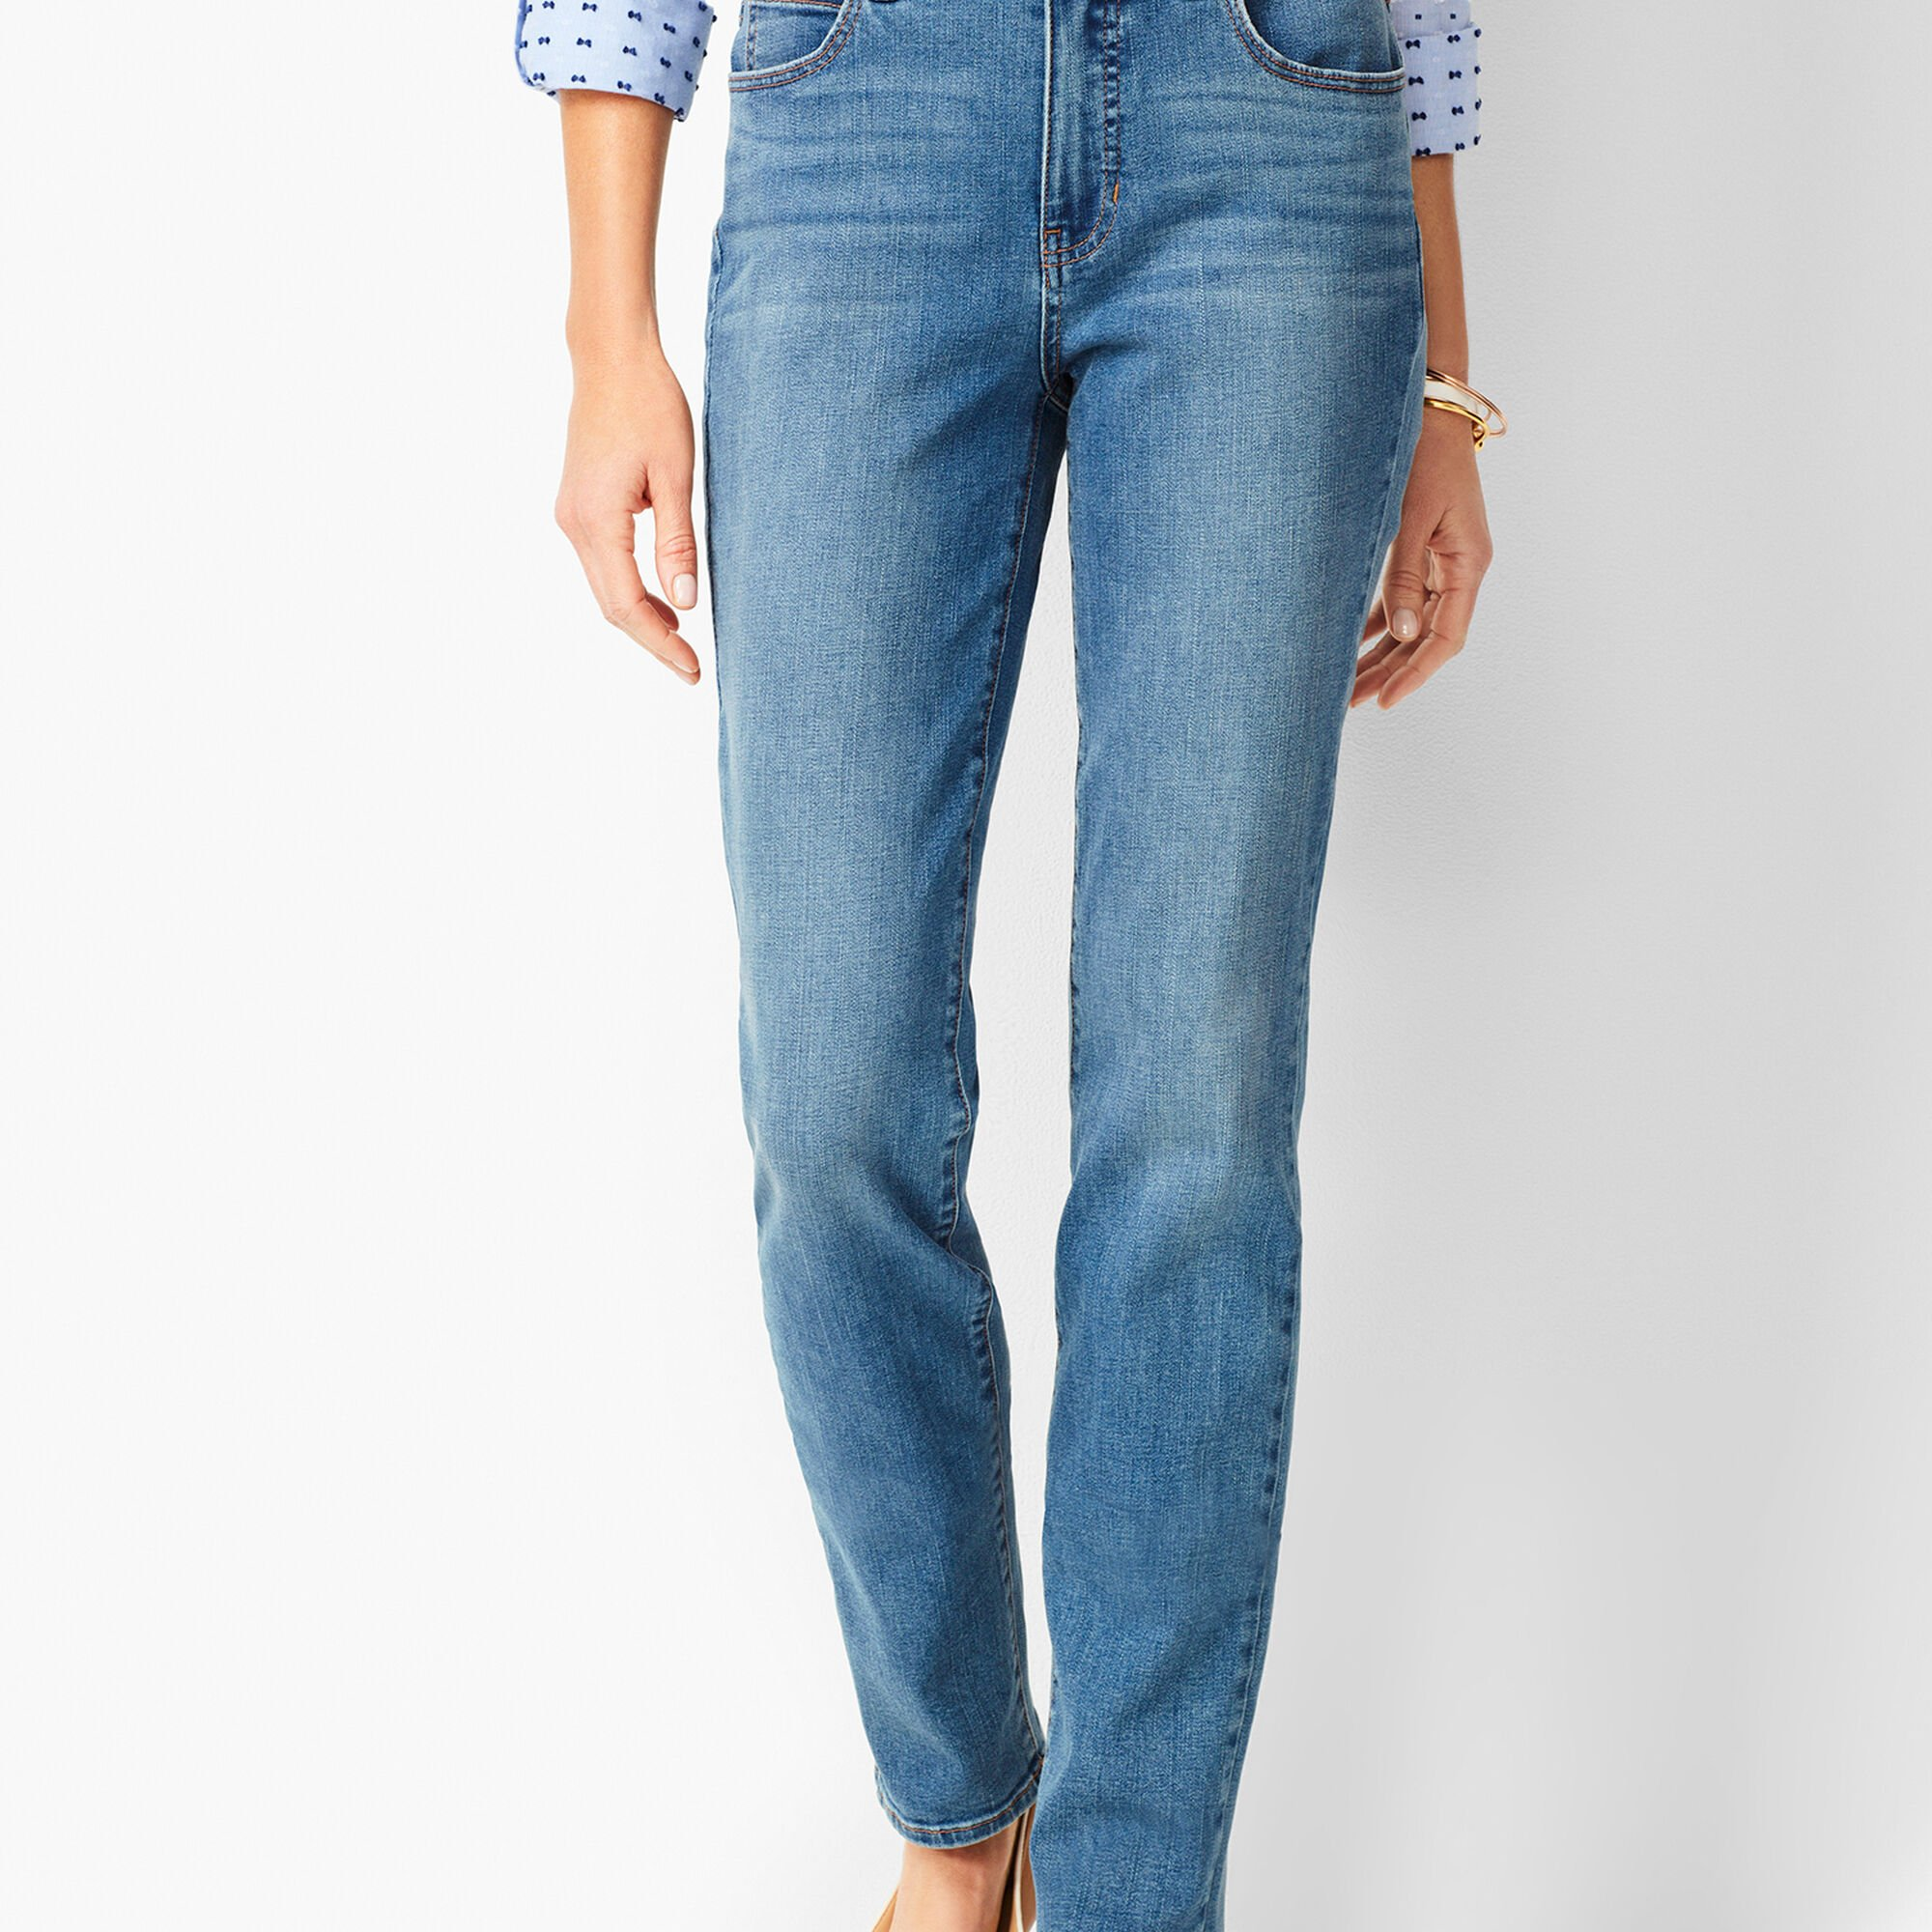 78290d9dee High-Waist Straight-Leg Jeans - Aurora Wash Opens a New Window.